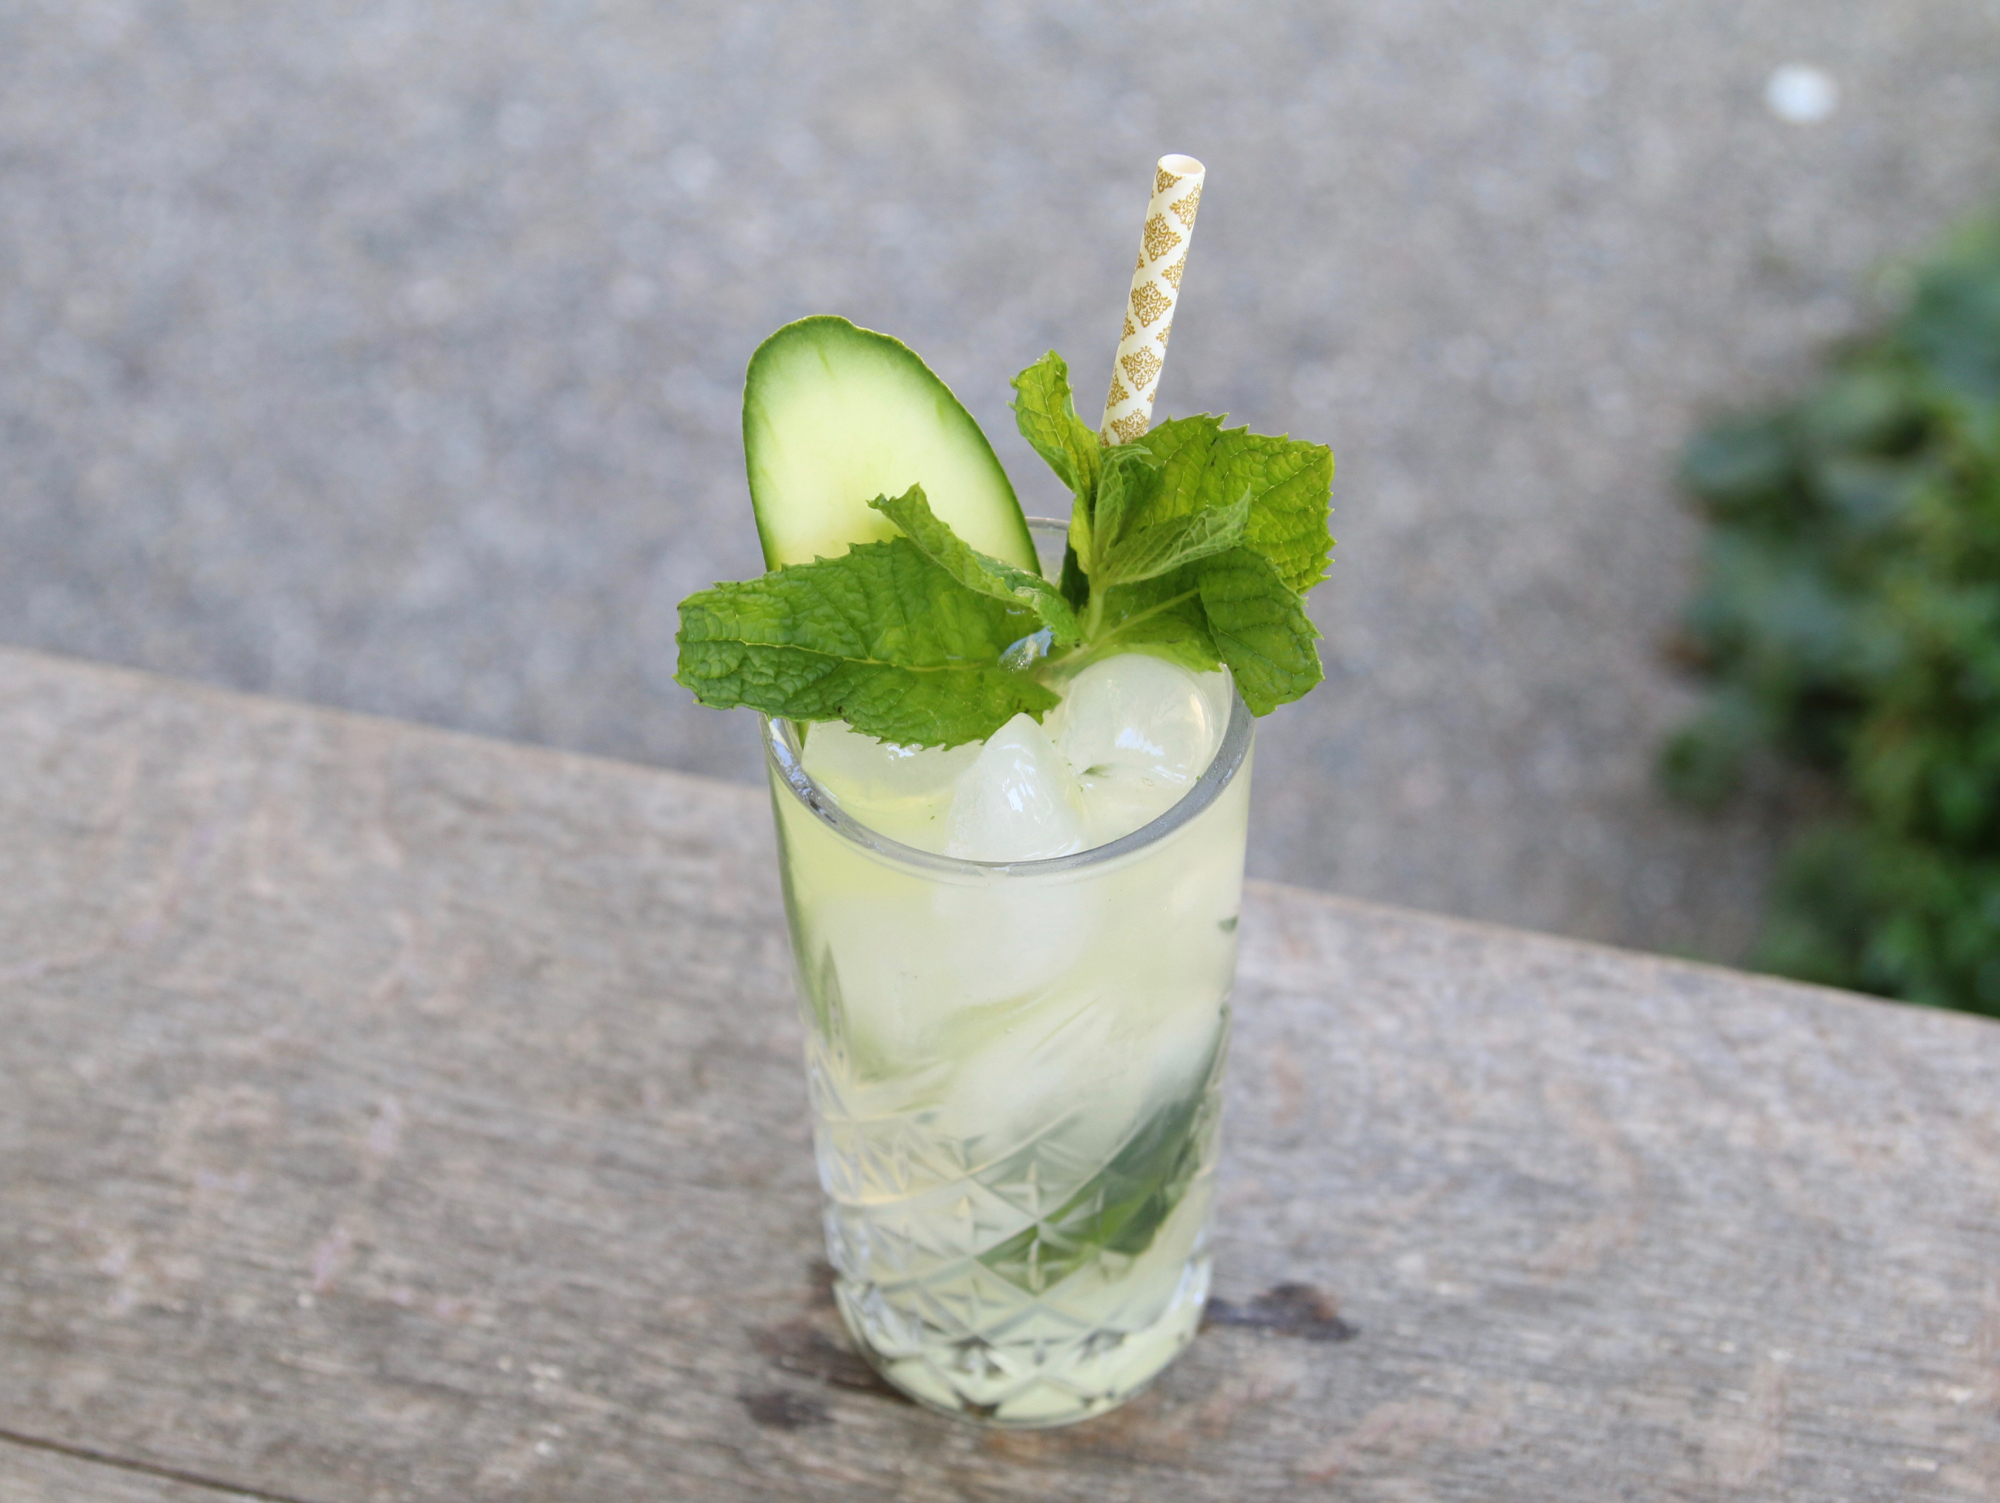 Fever tree cucumber tonic